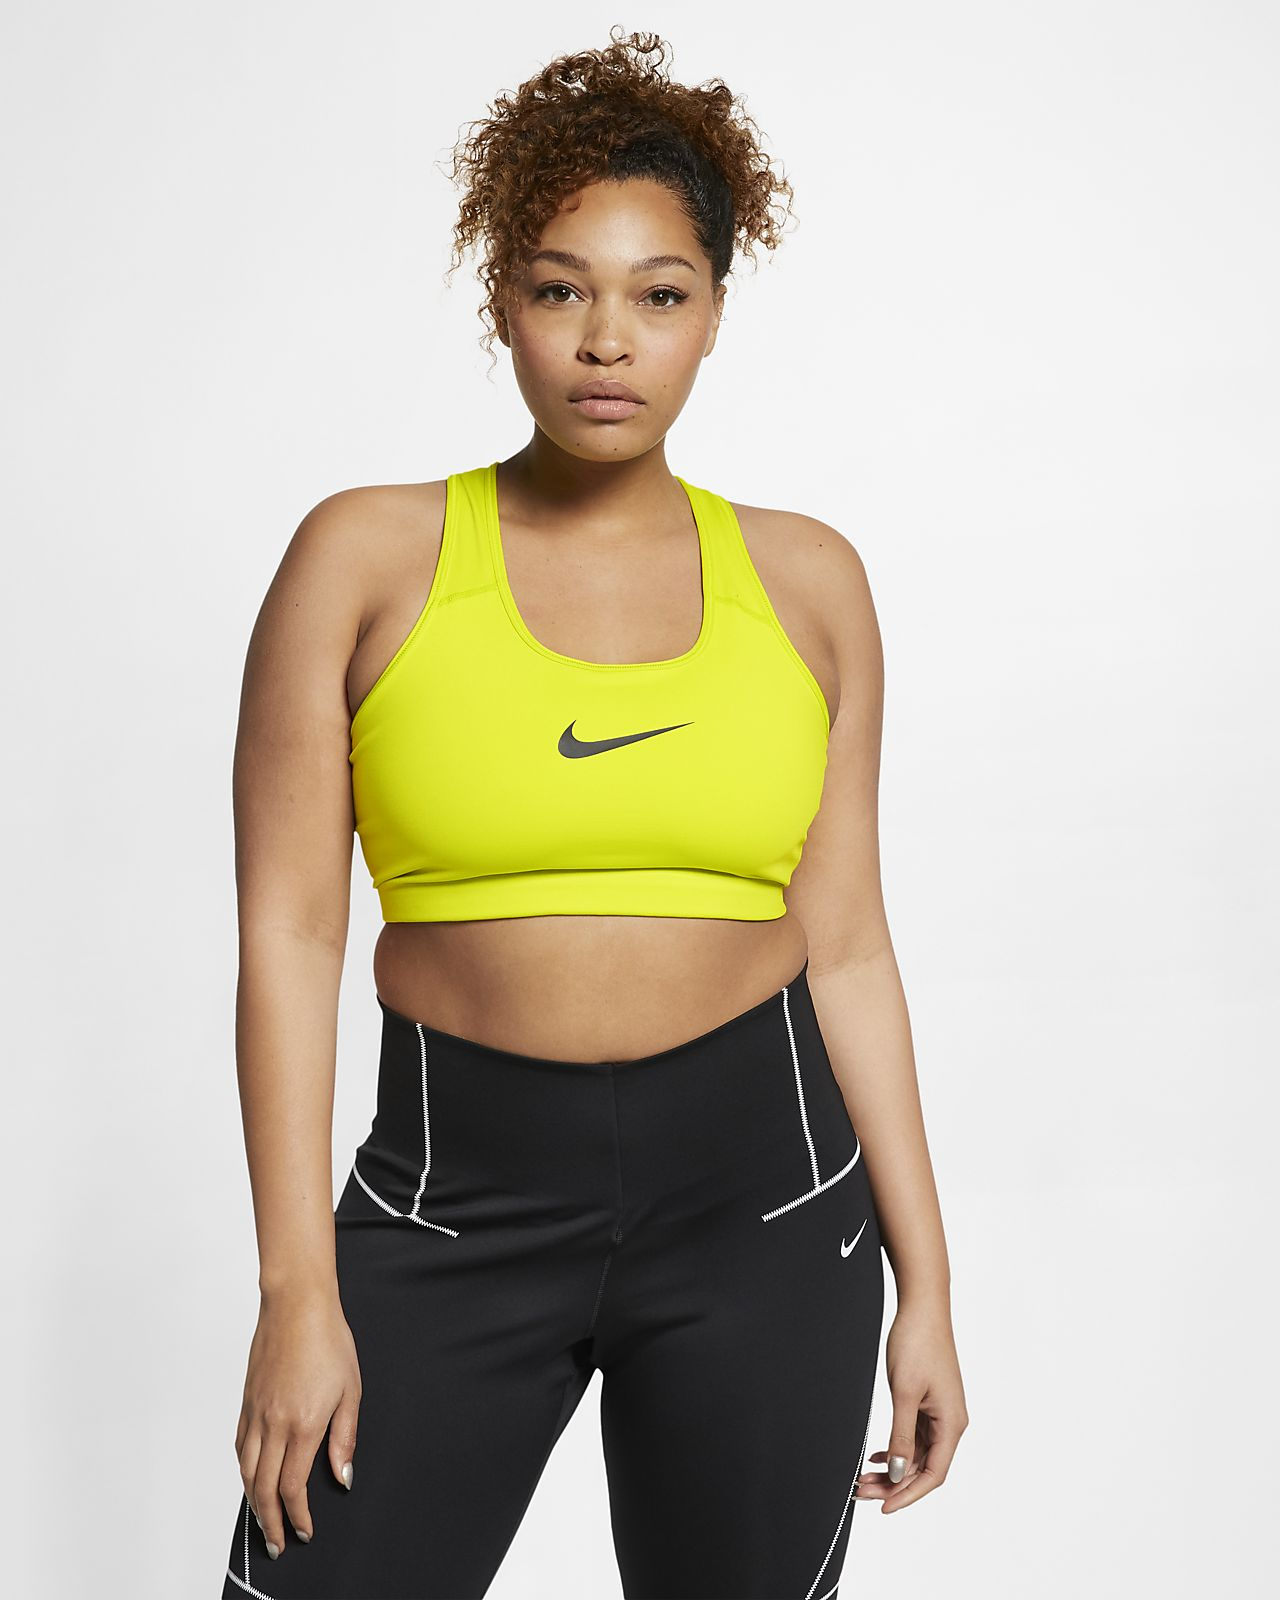 c645dbe4b5867 Nike Women's Swoosh Medium-Support Sports Bra (Plus Size). Nike.com MA